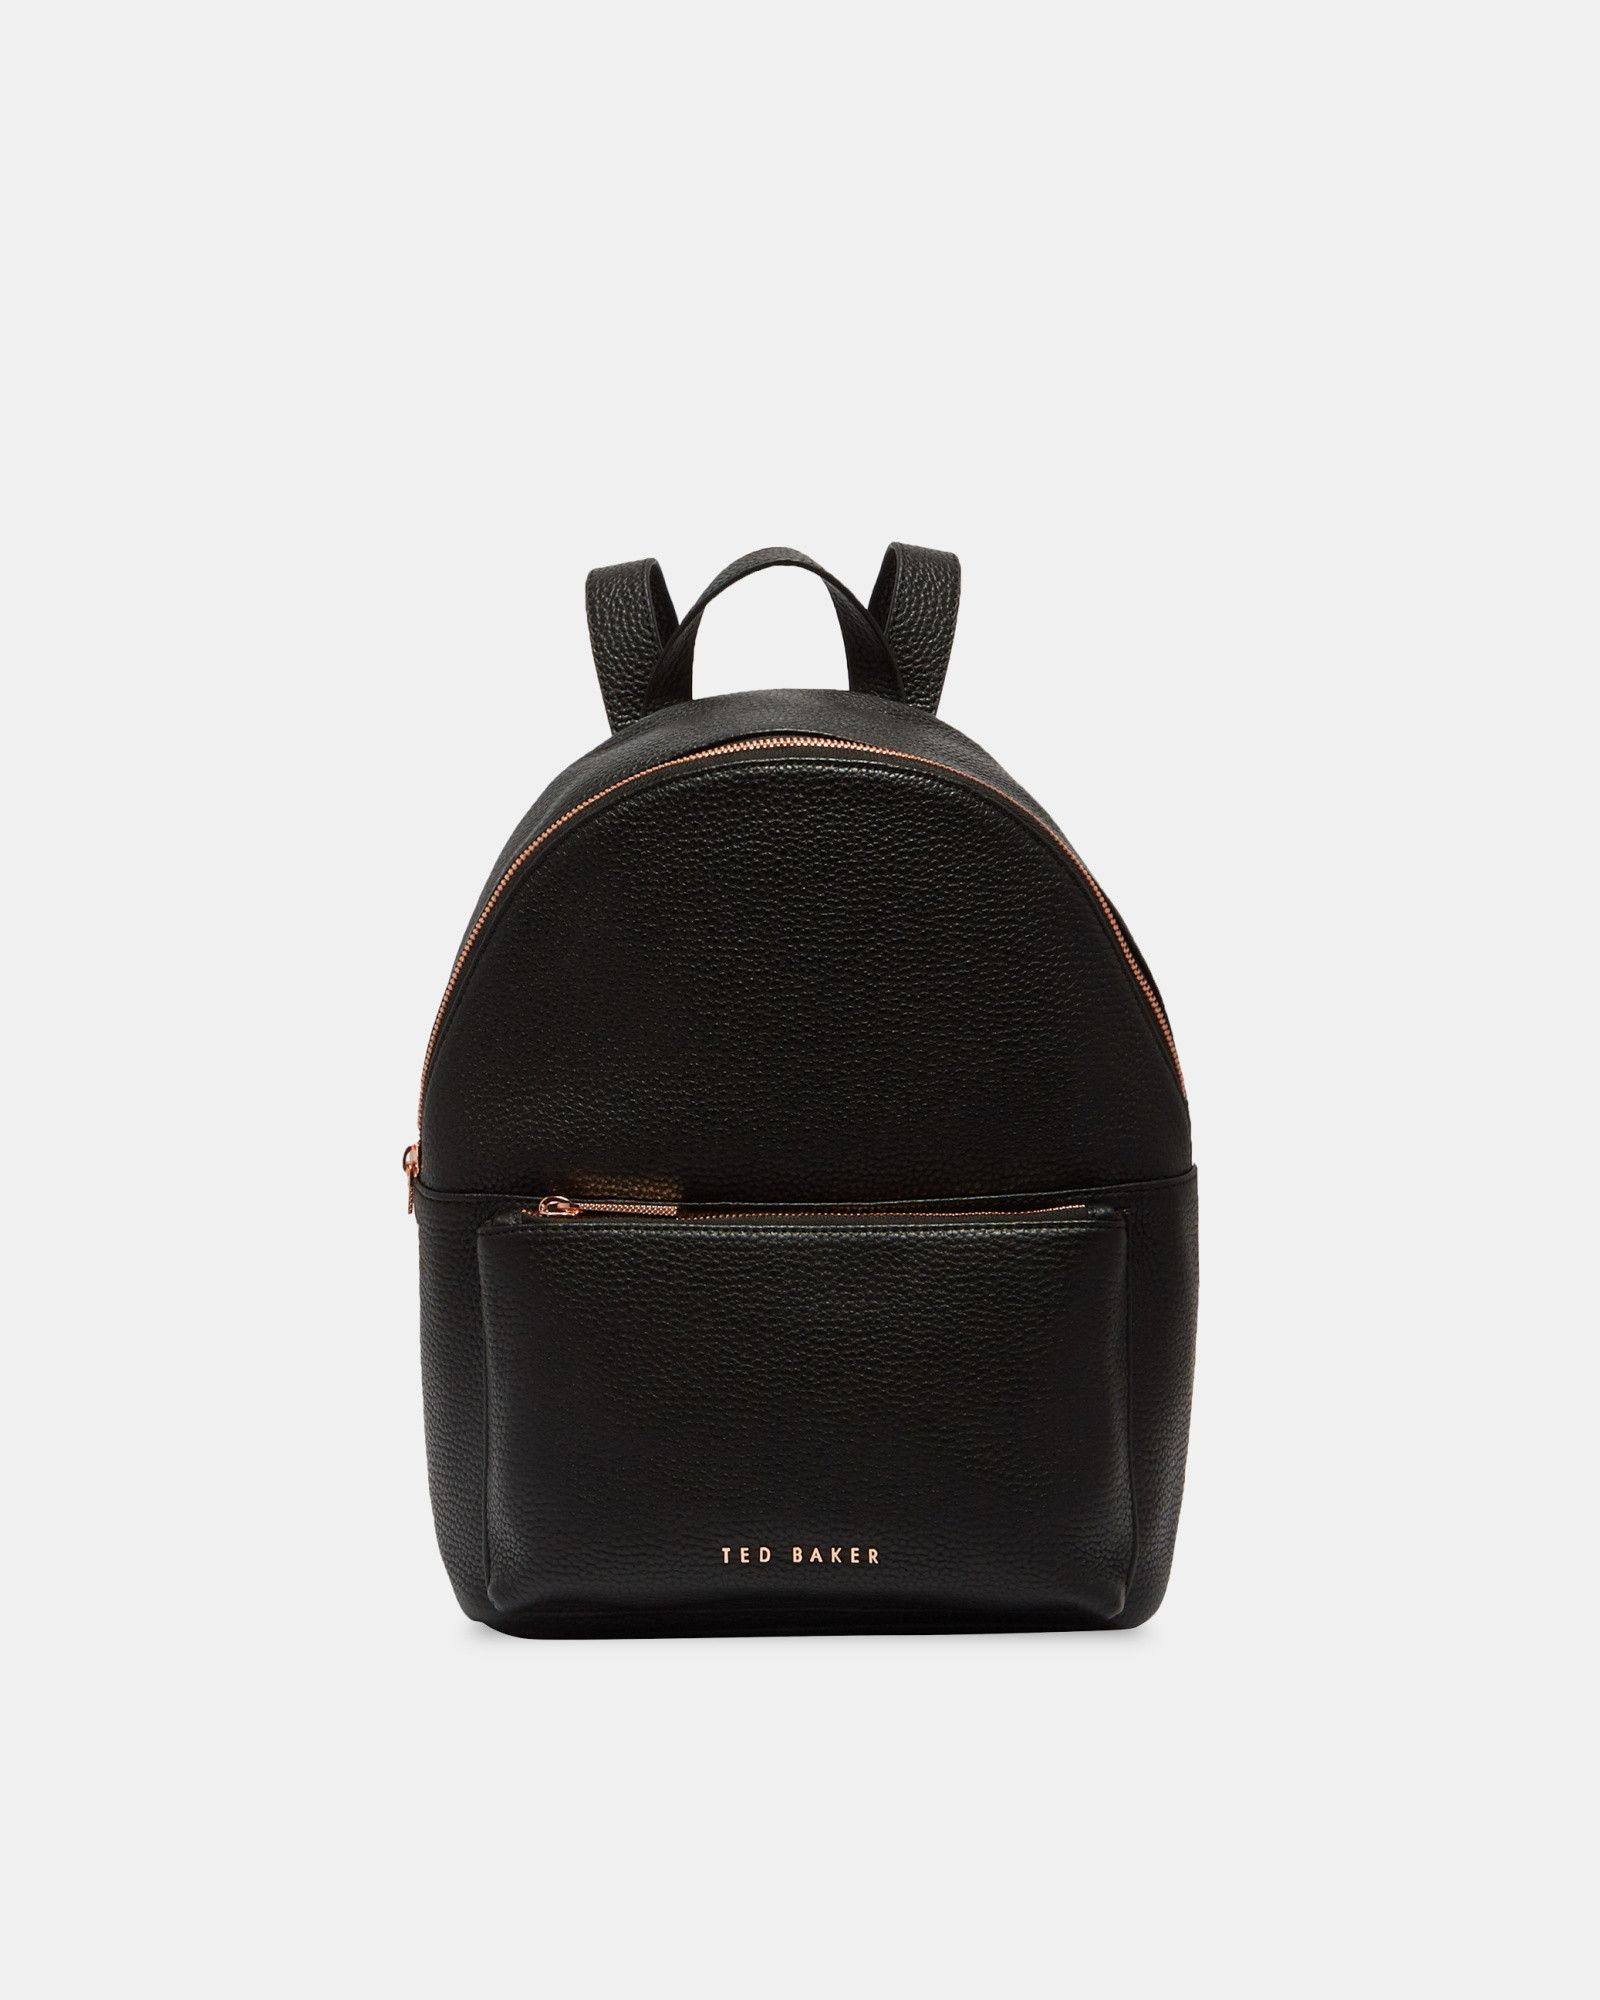 093ae87480d Ted Baker Leather backpack Black | B a g s & B a c k p a c k s ...